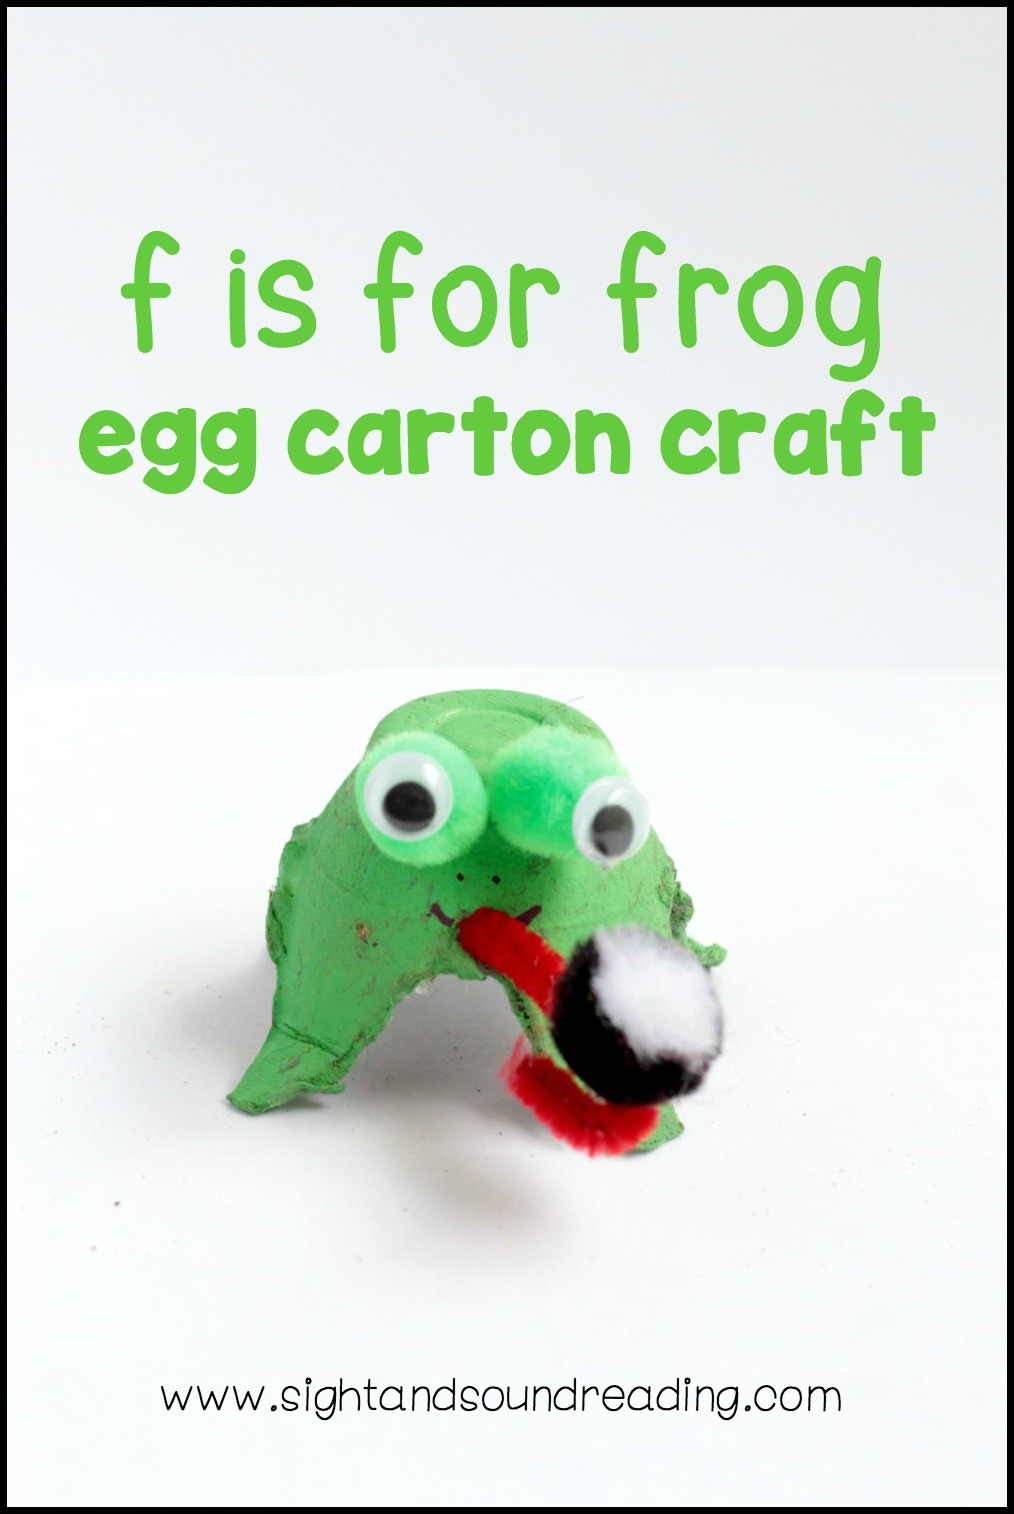 letter f craft to make frog egg carton craft is a fun way to help teach